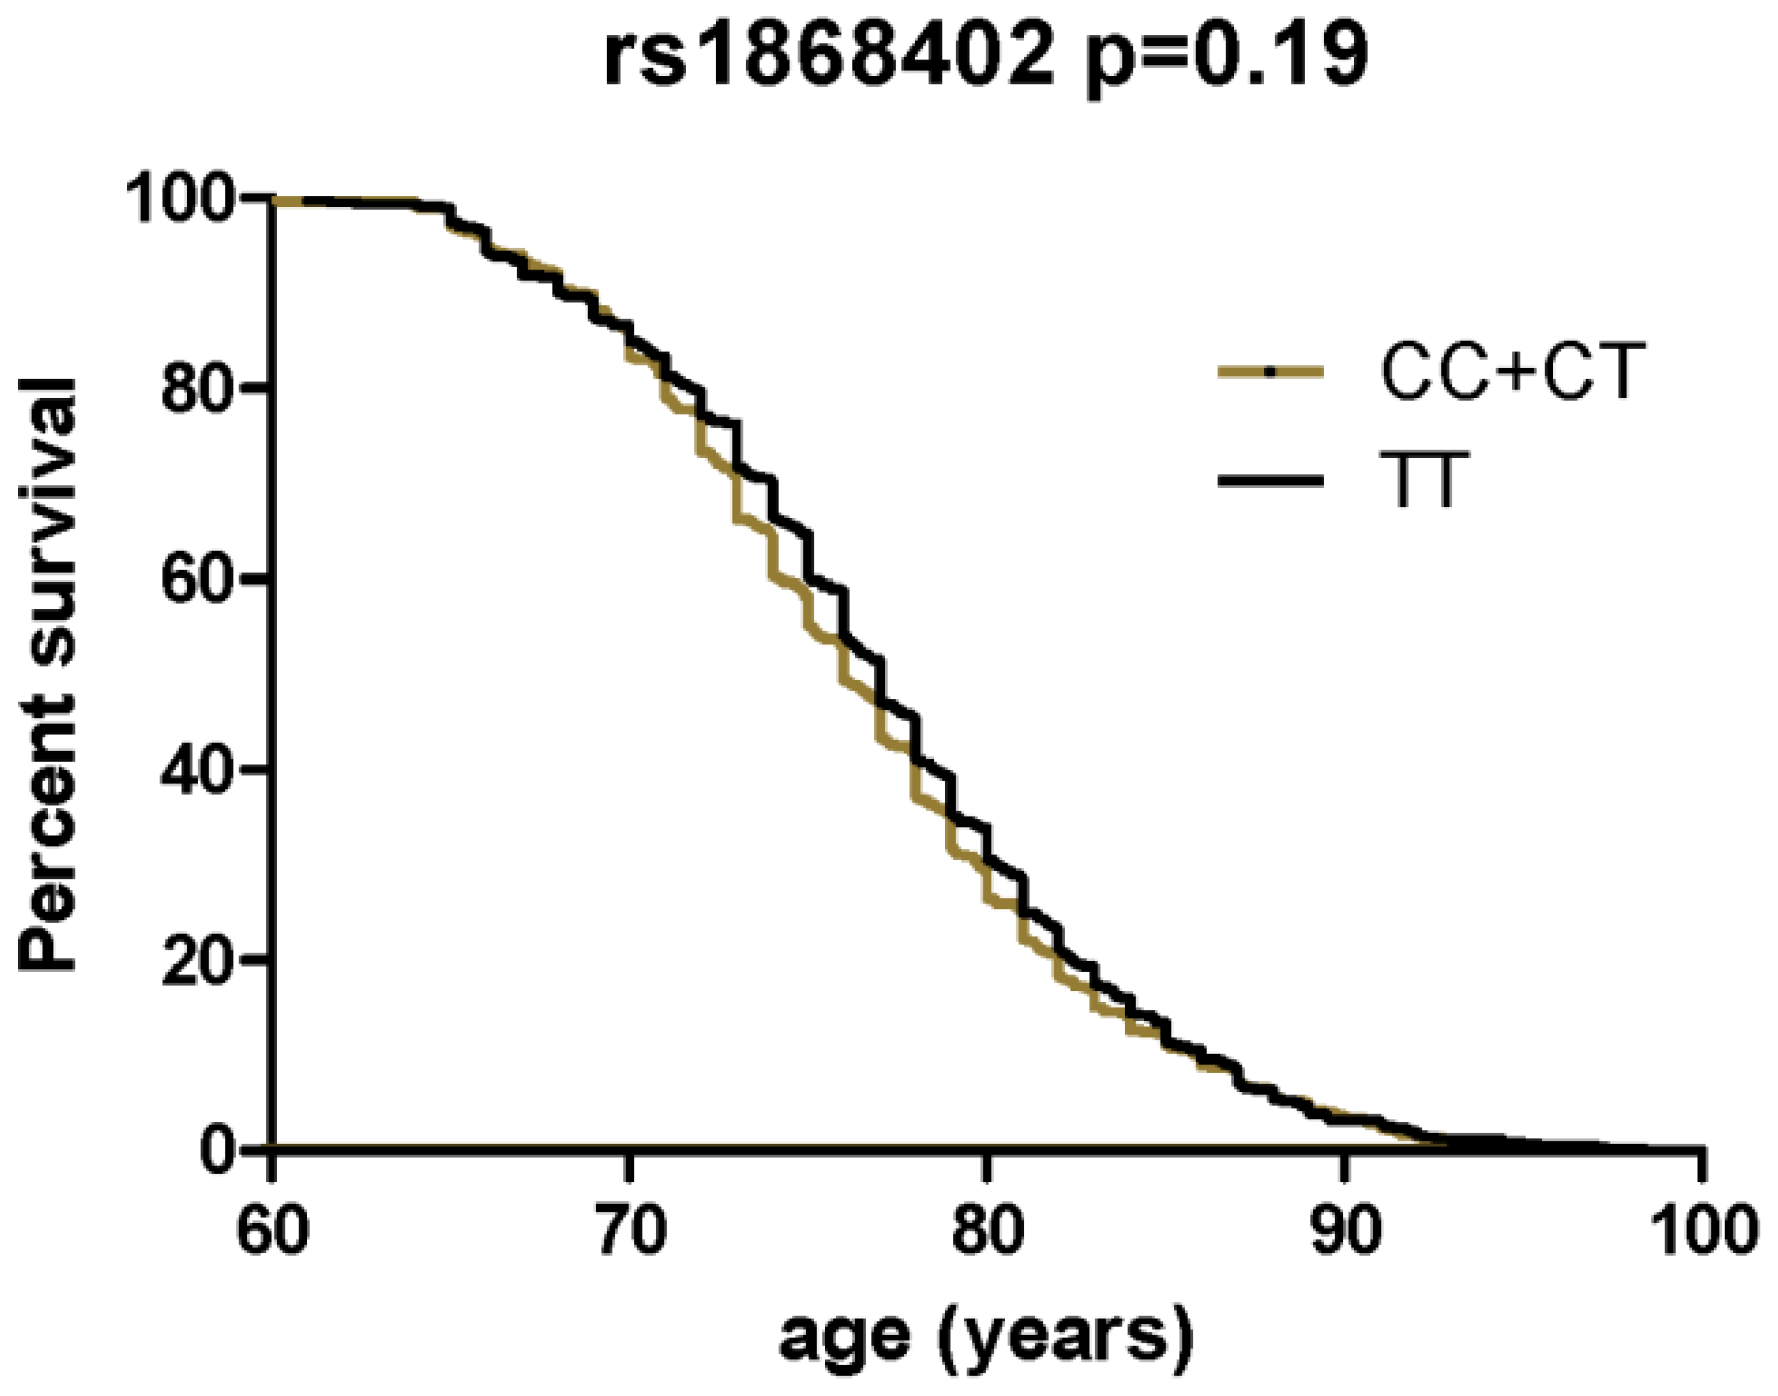 Survival curves comparing age at onset of LOAD between the different genotypes of rs1868402.